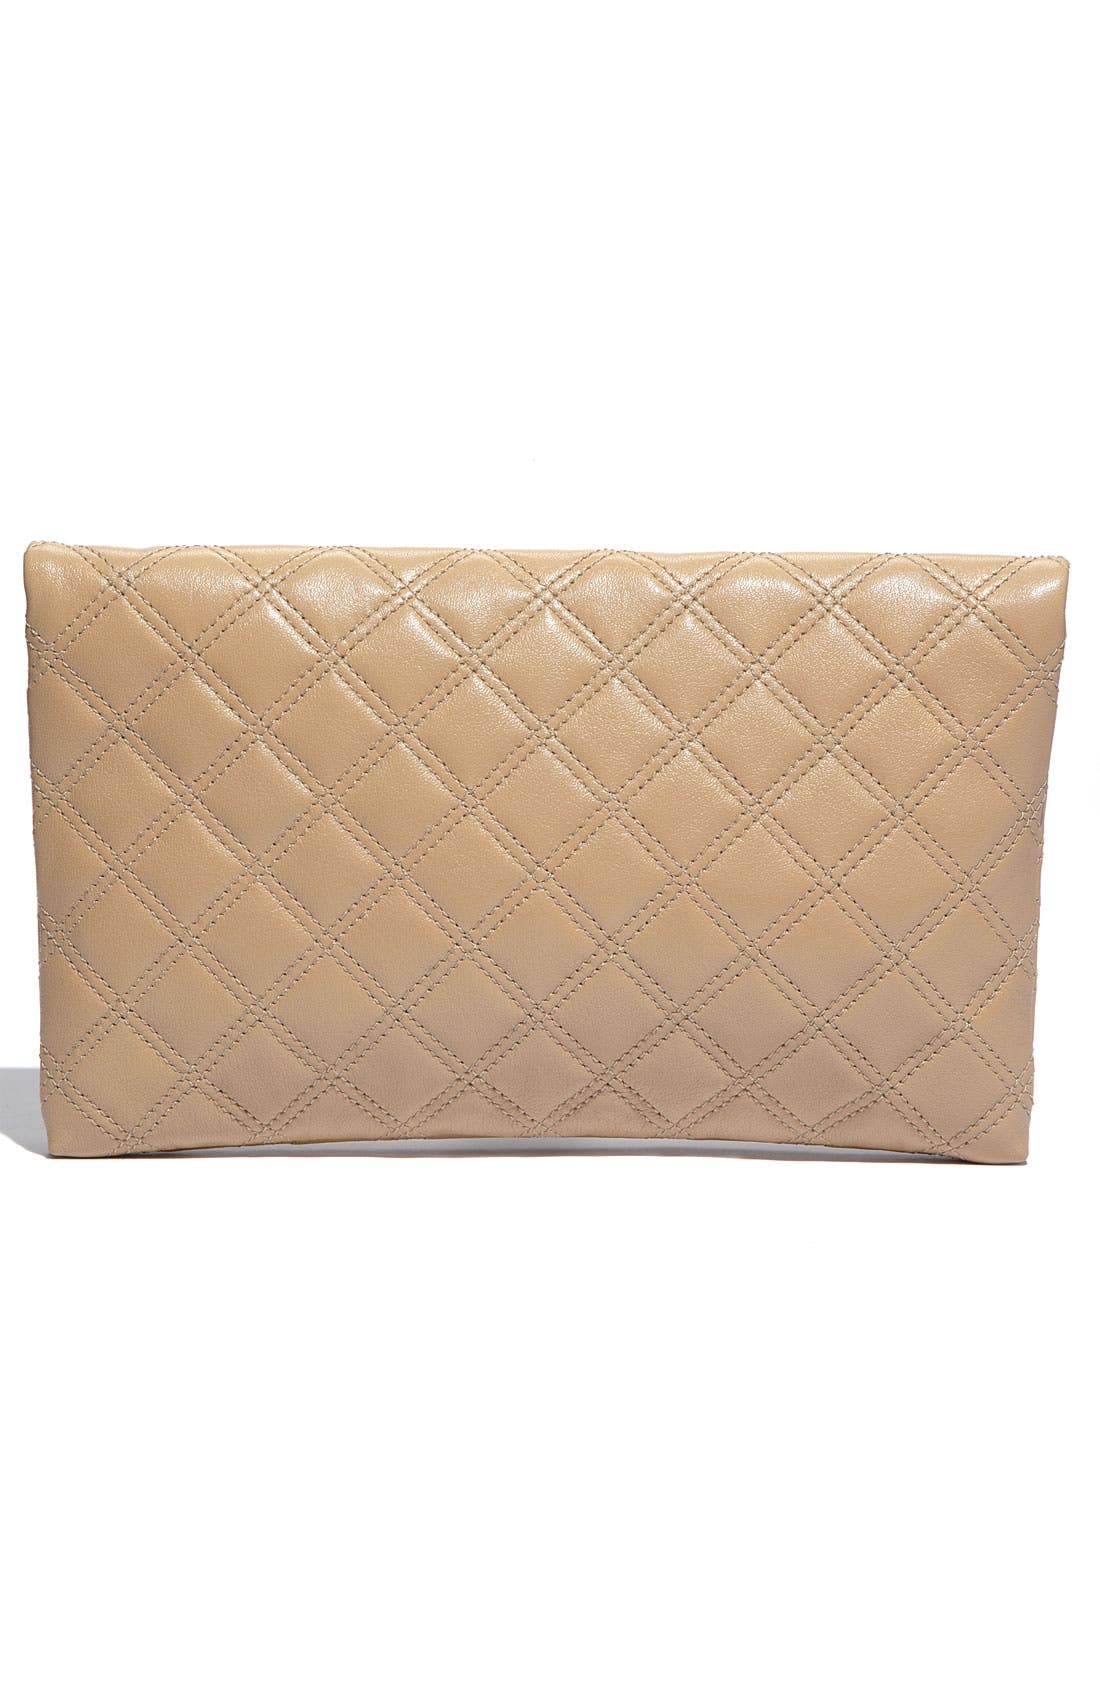 ,                             'Quilting - Eugenie' Leather Clutch,                             Alternate thumbnail 8, color,                             255